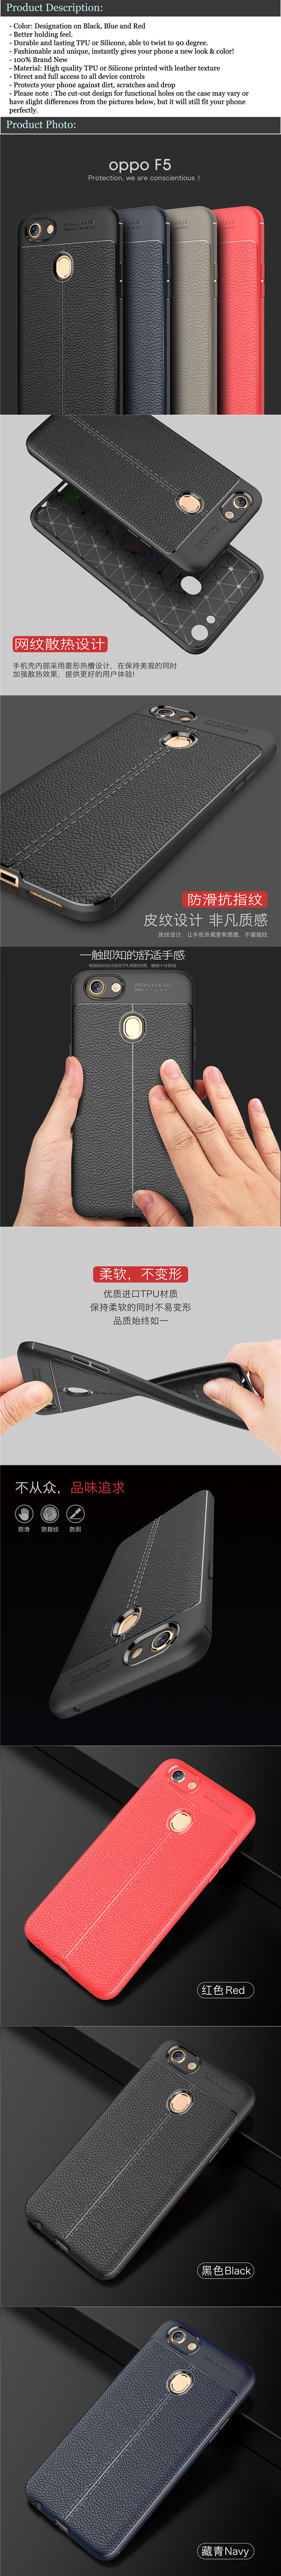 Tpu Leather Case For Oppo F7 F9 A3s Soft Auto Focus Note The Cut Out Design Functional Holes On May Vary Or Have Slightly Differences From Picture But It Will Still Fit Your Phone Well